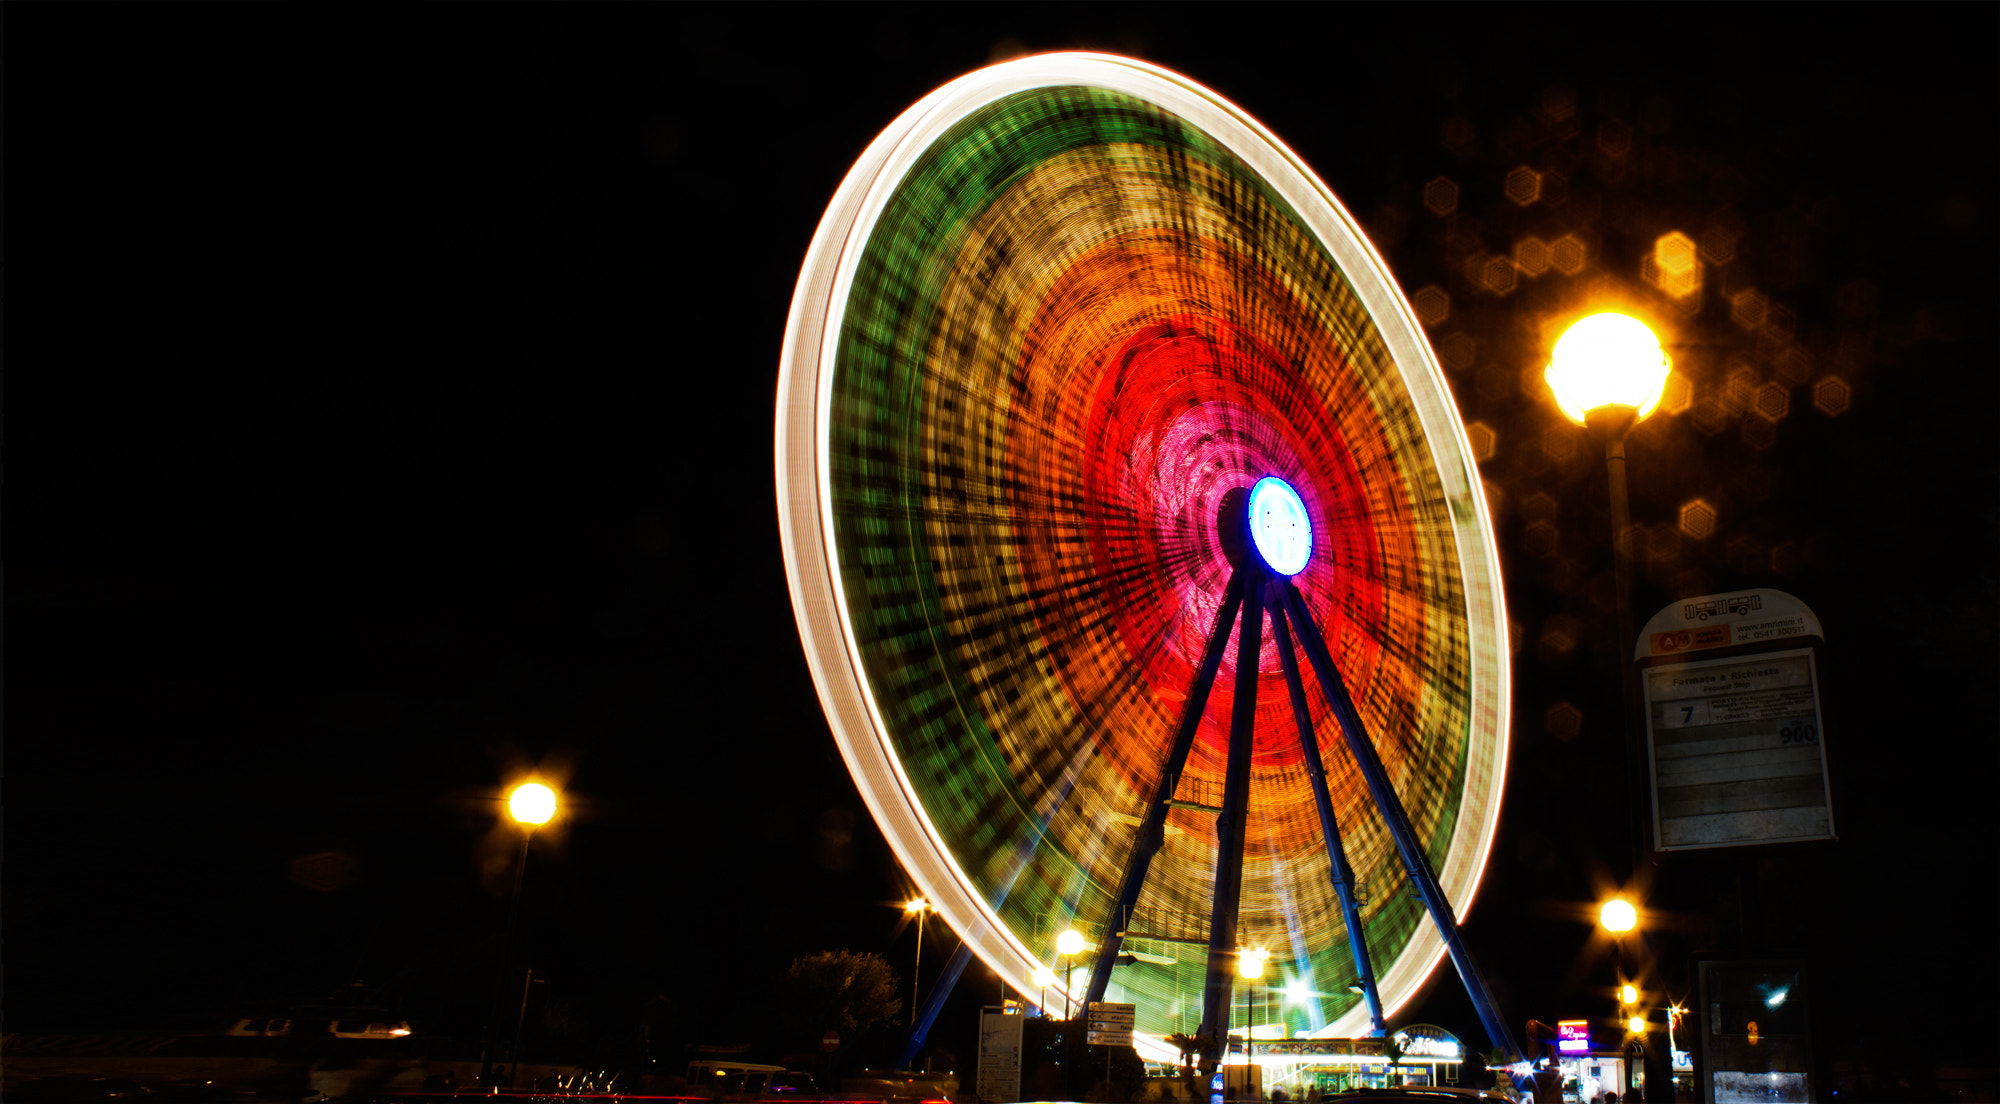 Photograph Fast Wheel by giovanni triggiani on 500px